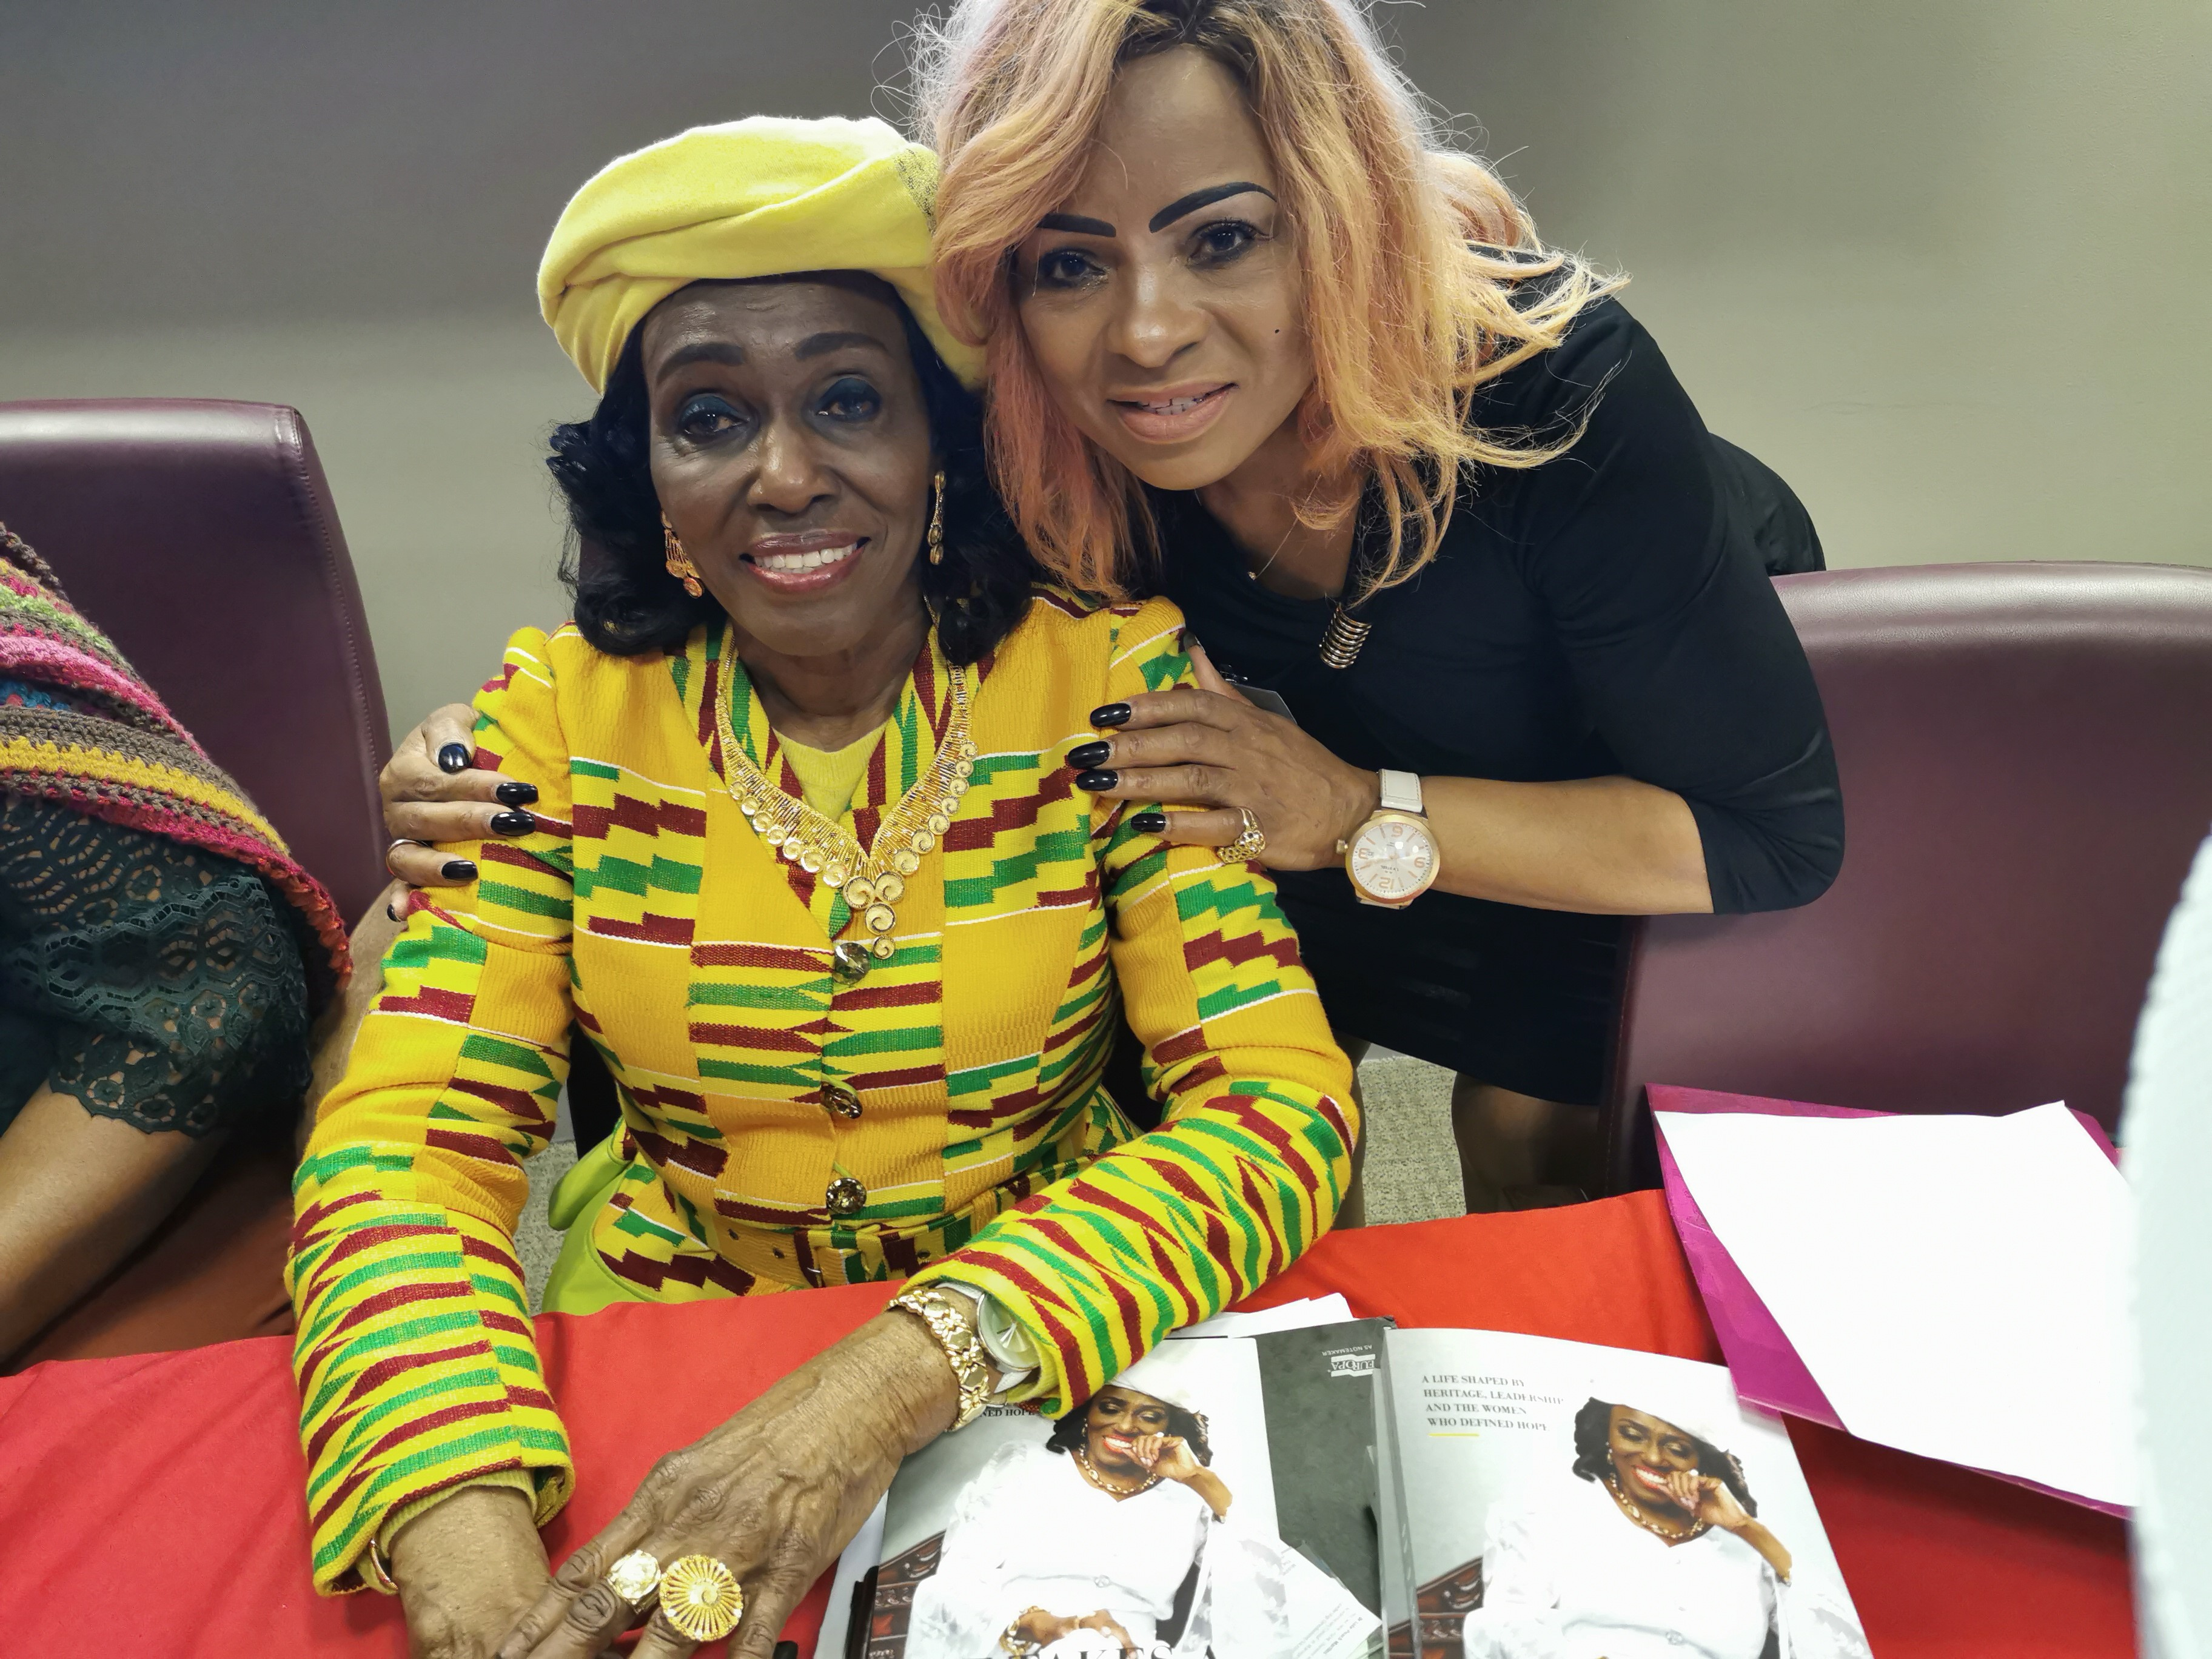 Nana Rawlings with Doirean.jpg